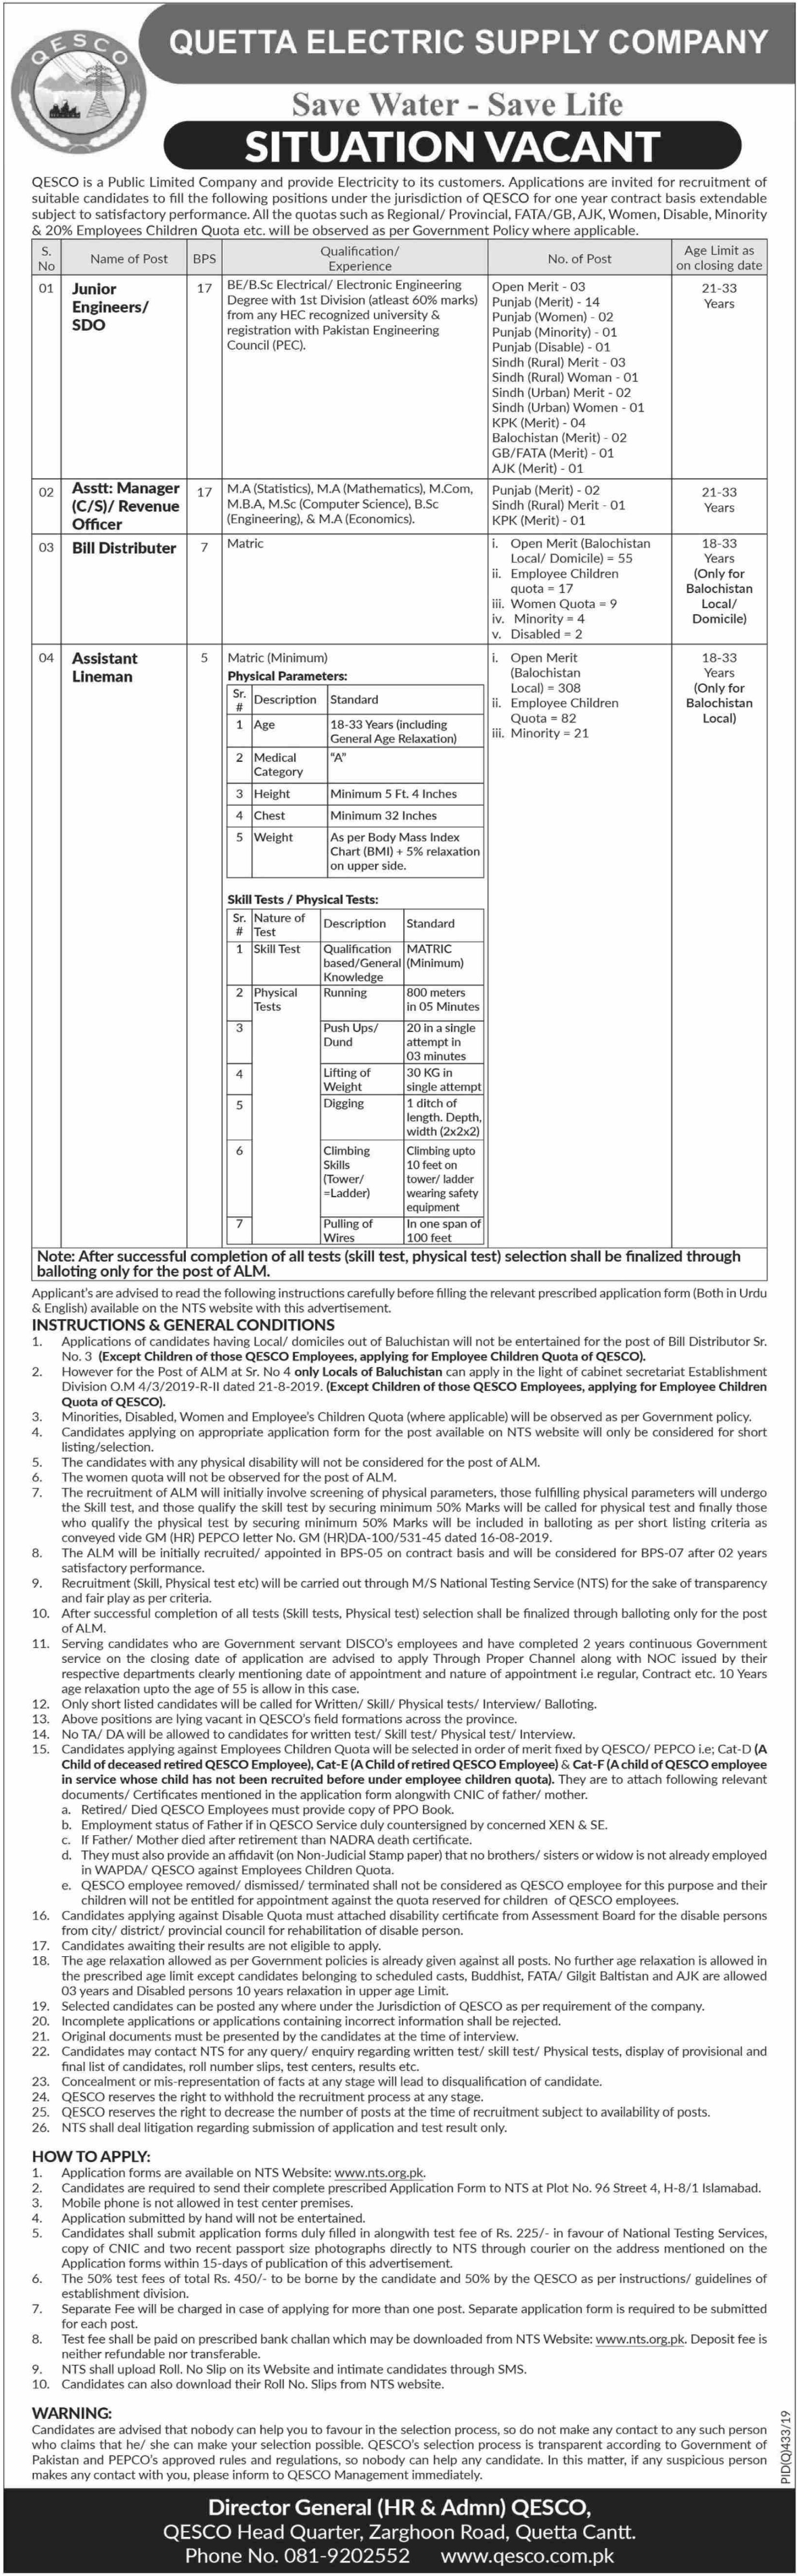 Quetta Electric Supply Company QESCO Jobs 2019 Wapda